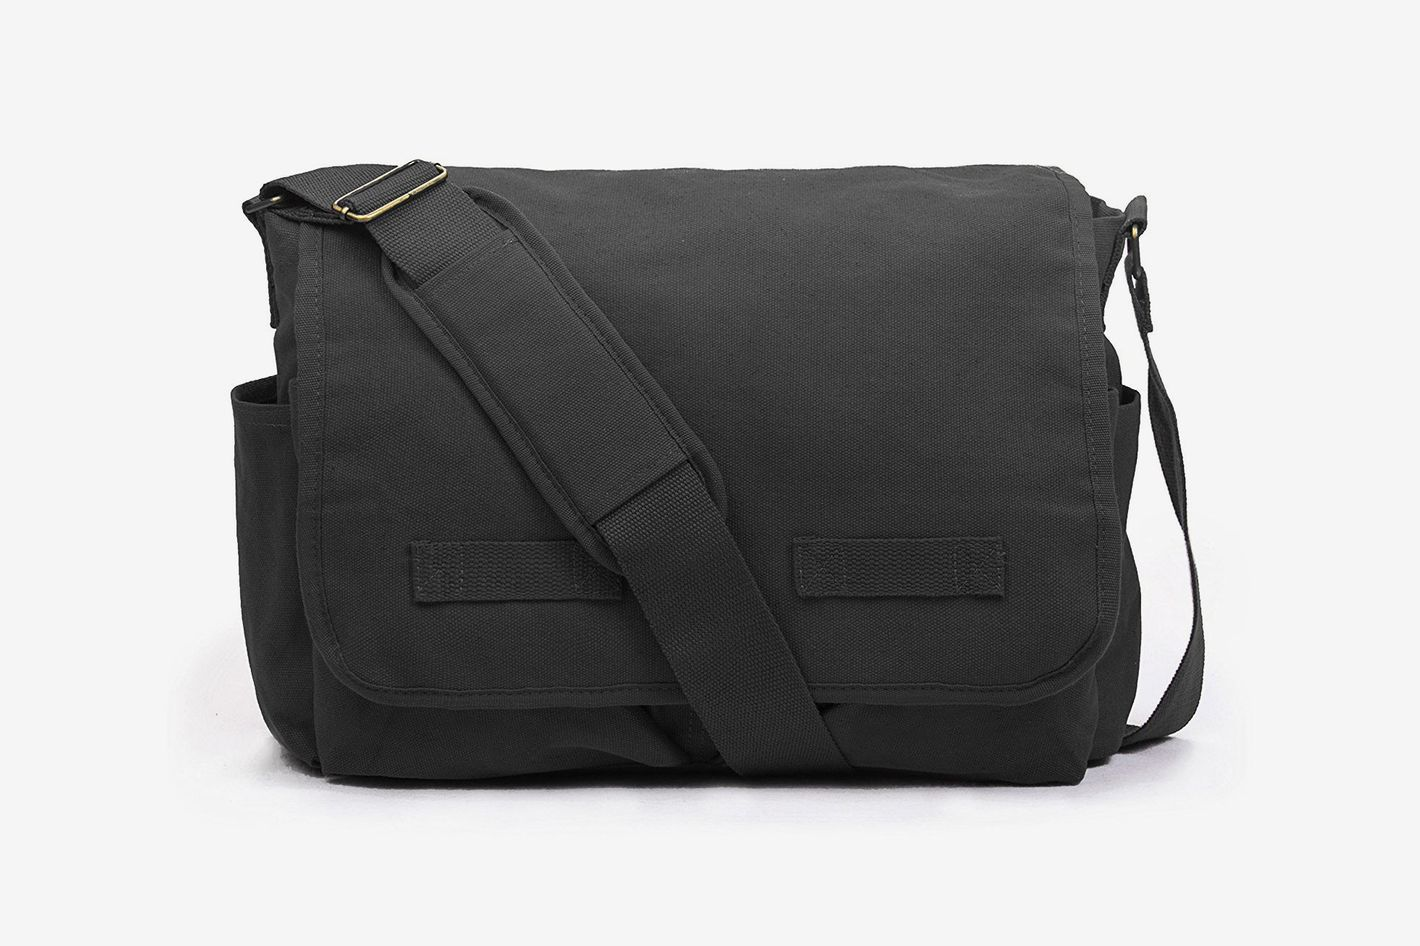 2573ad925dd3 11 Best Messenger Bags for Men 2018